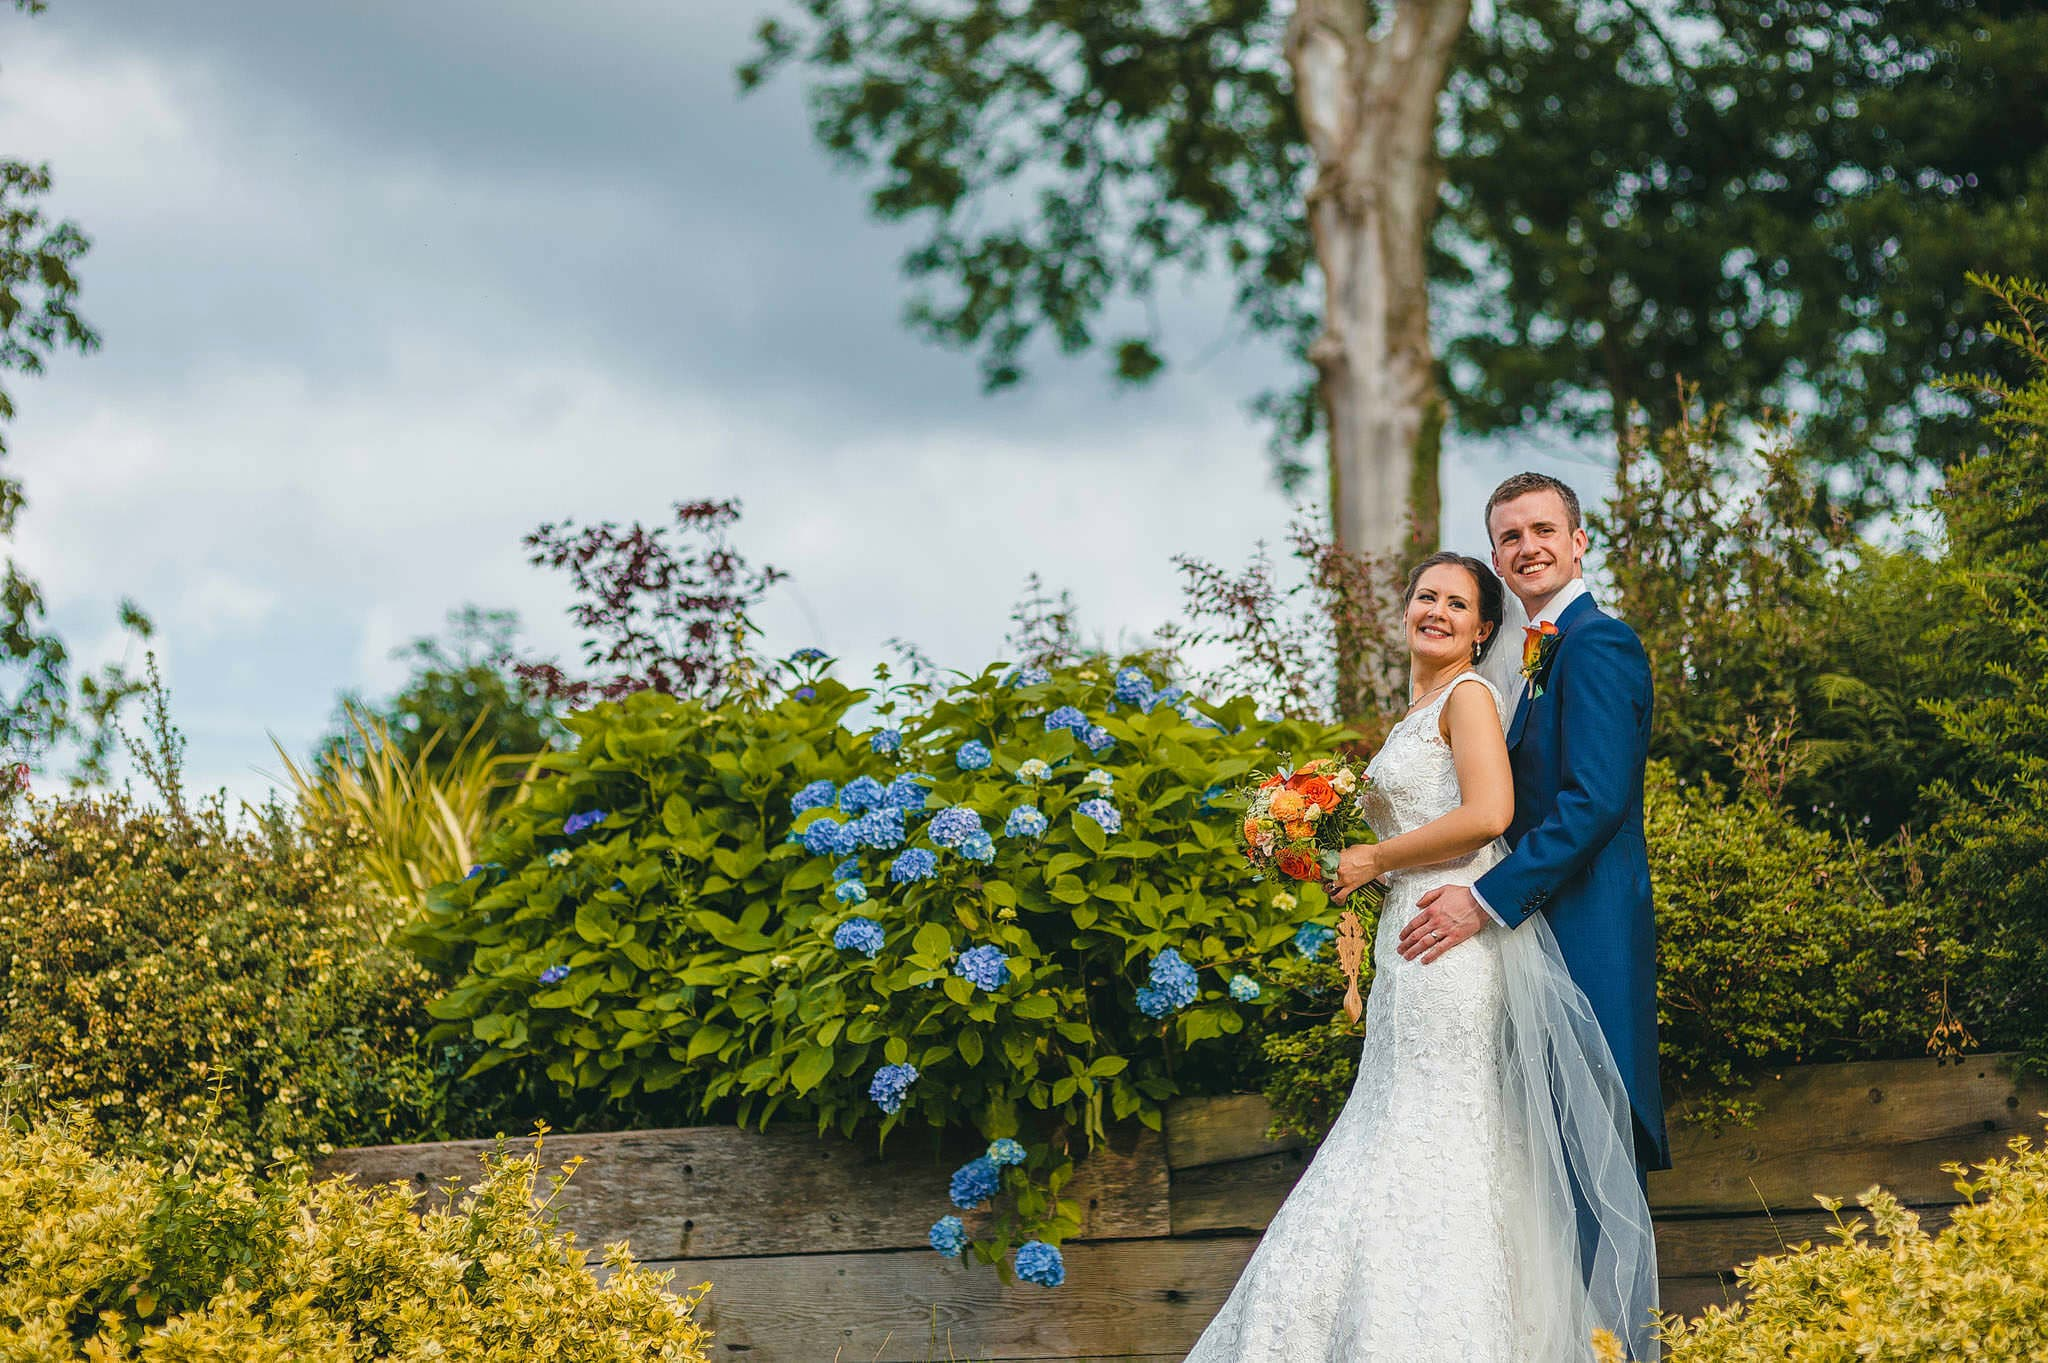 Midlands wedding photography - 2015 Review 46